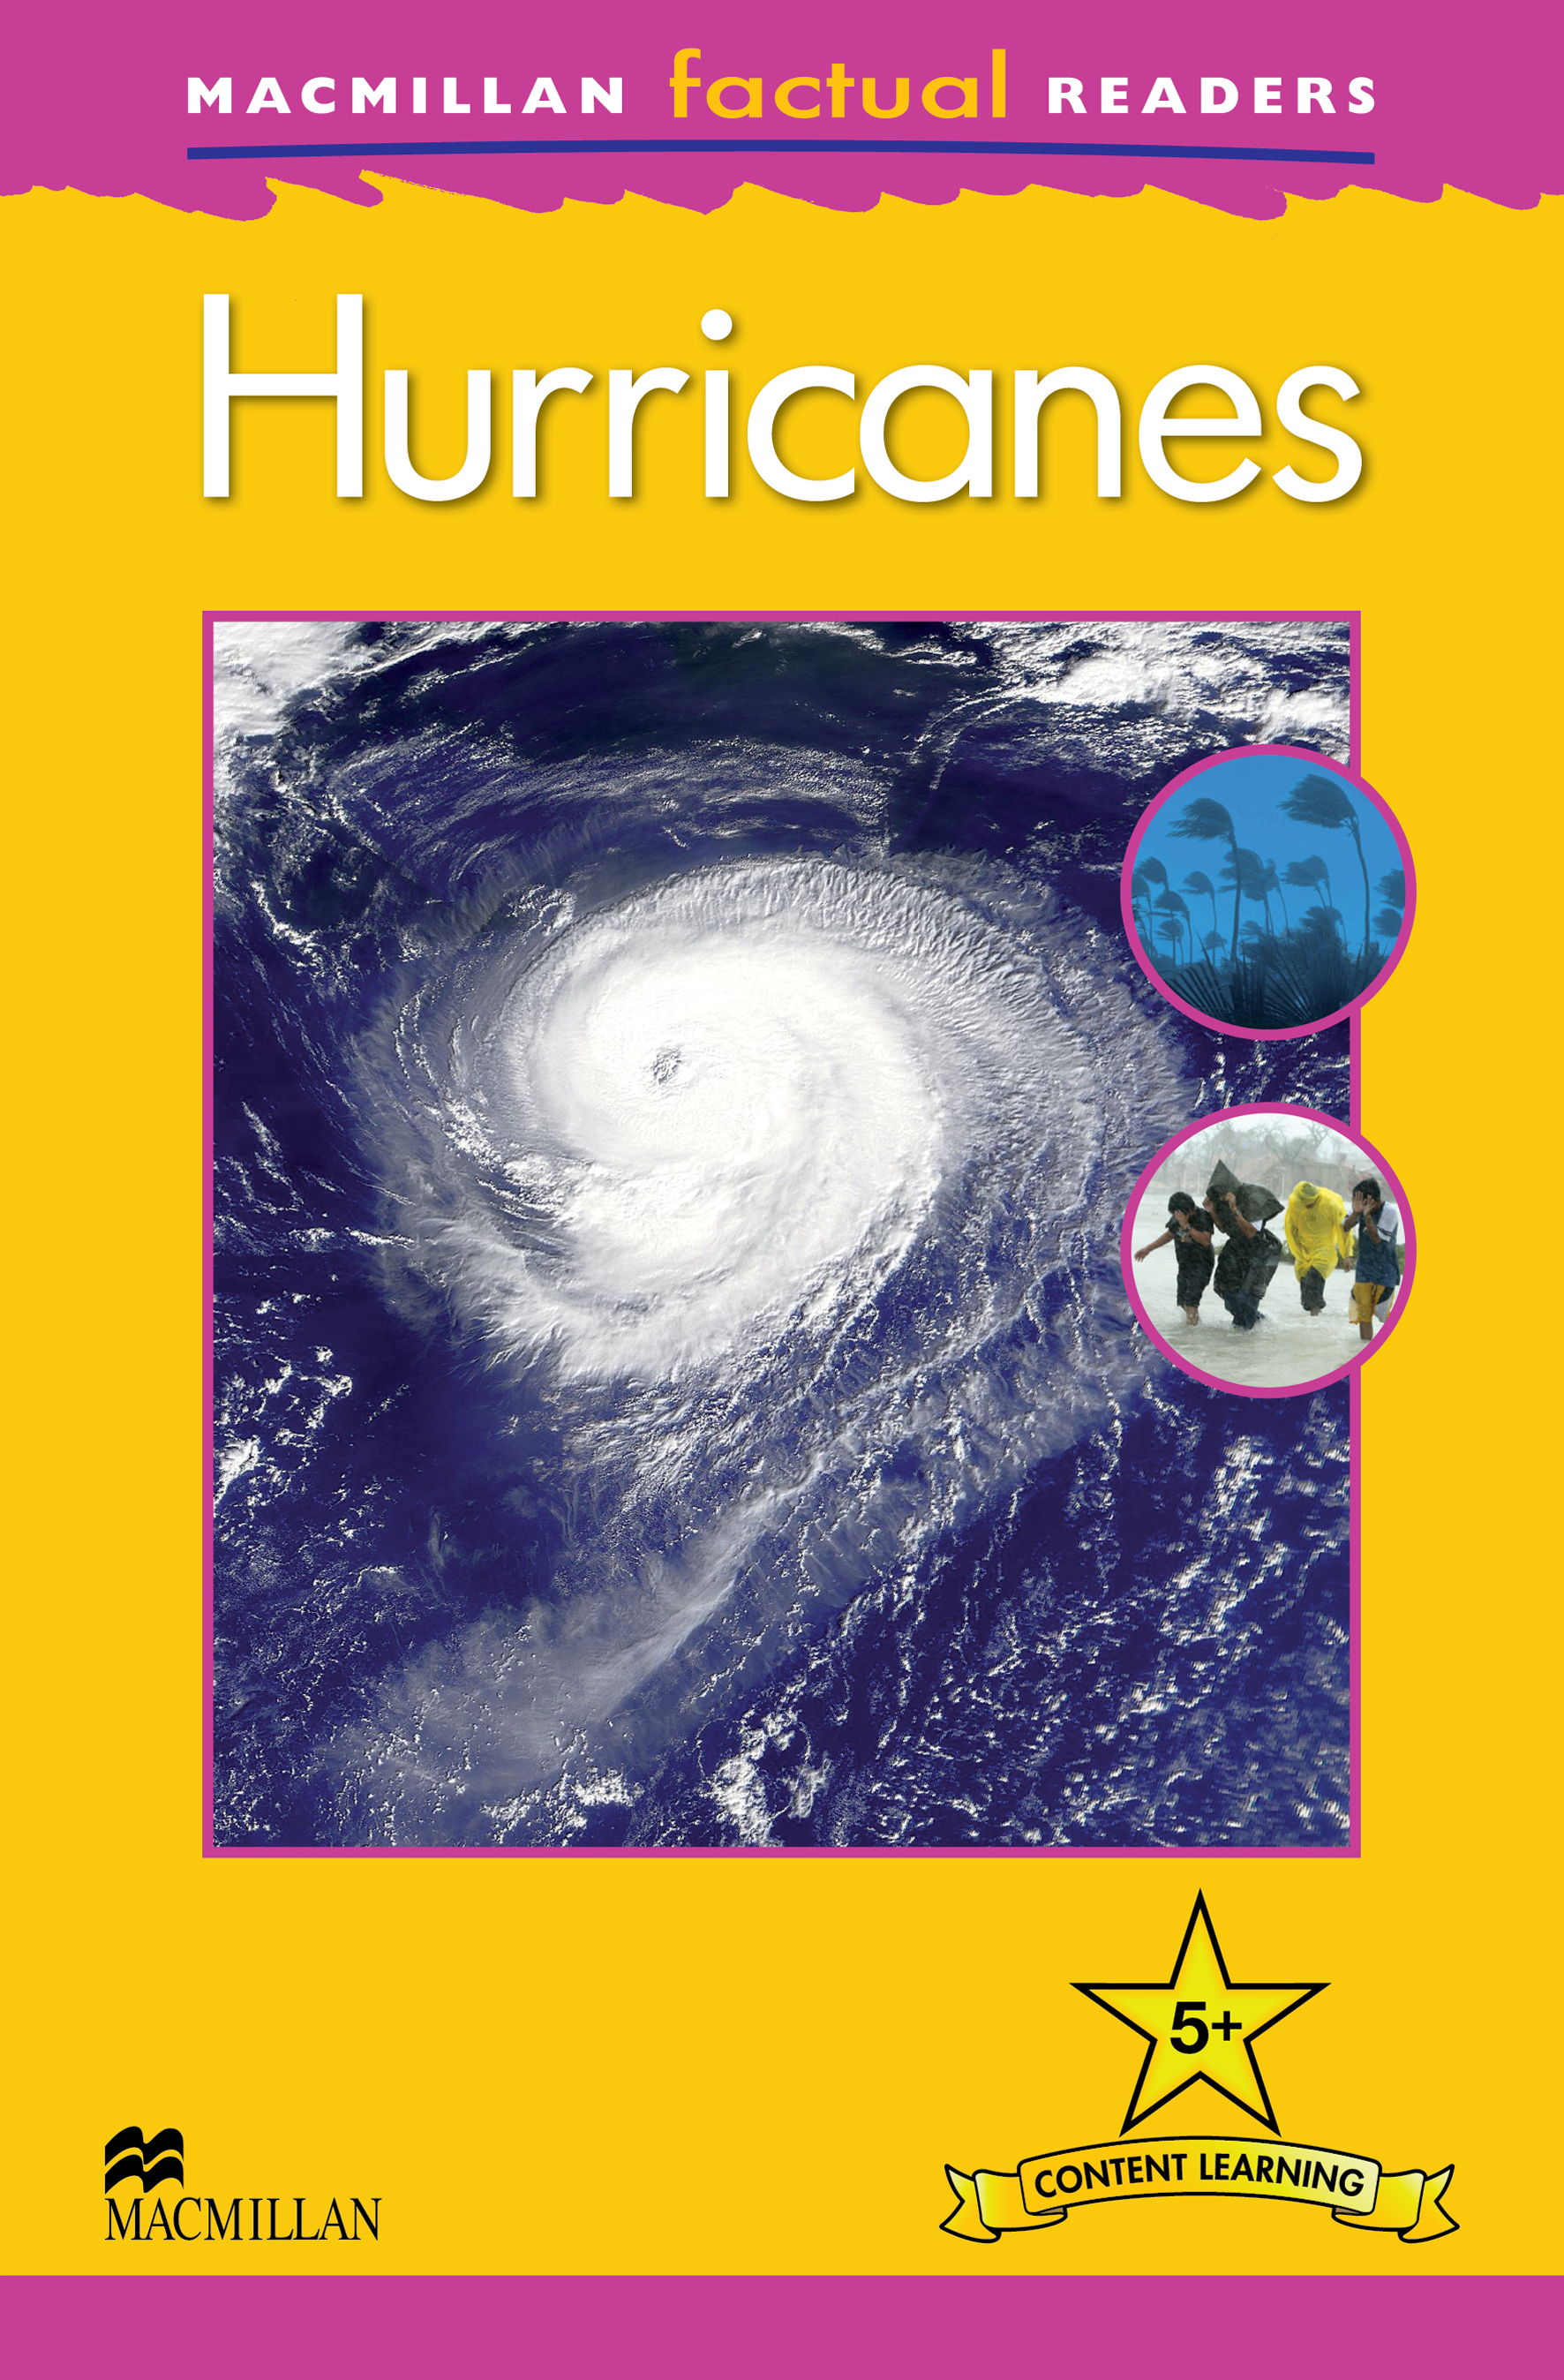 Macmillan Factual Readers: Hurricanes